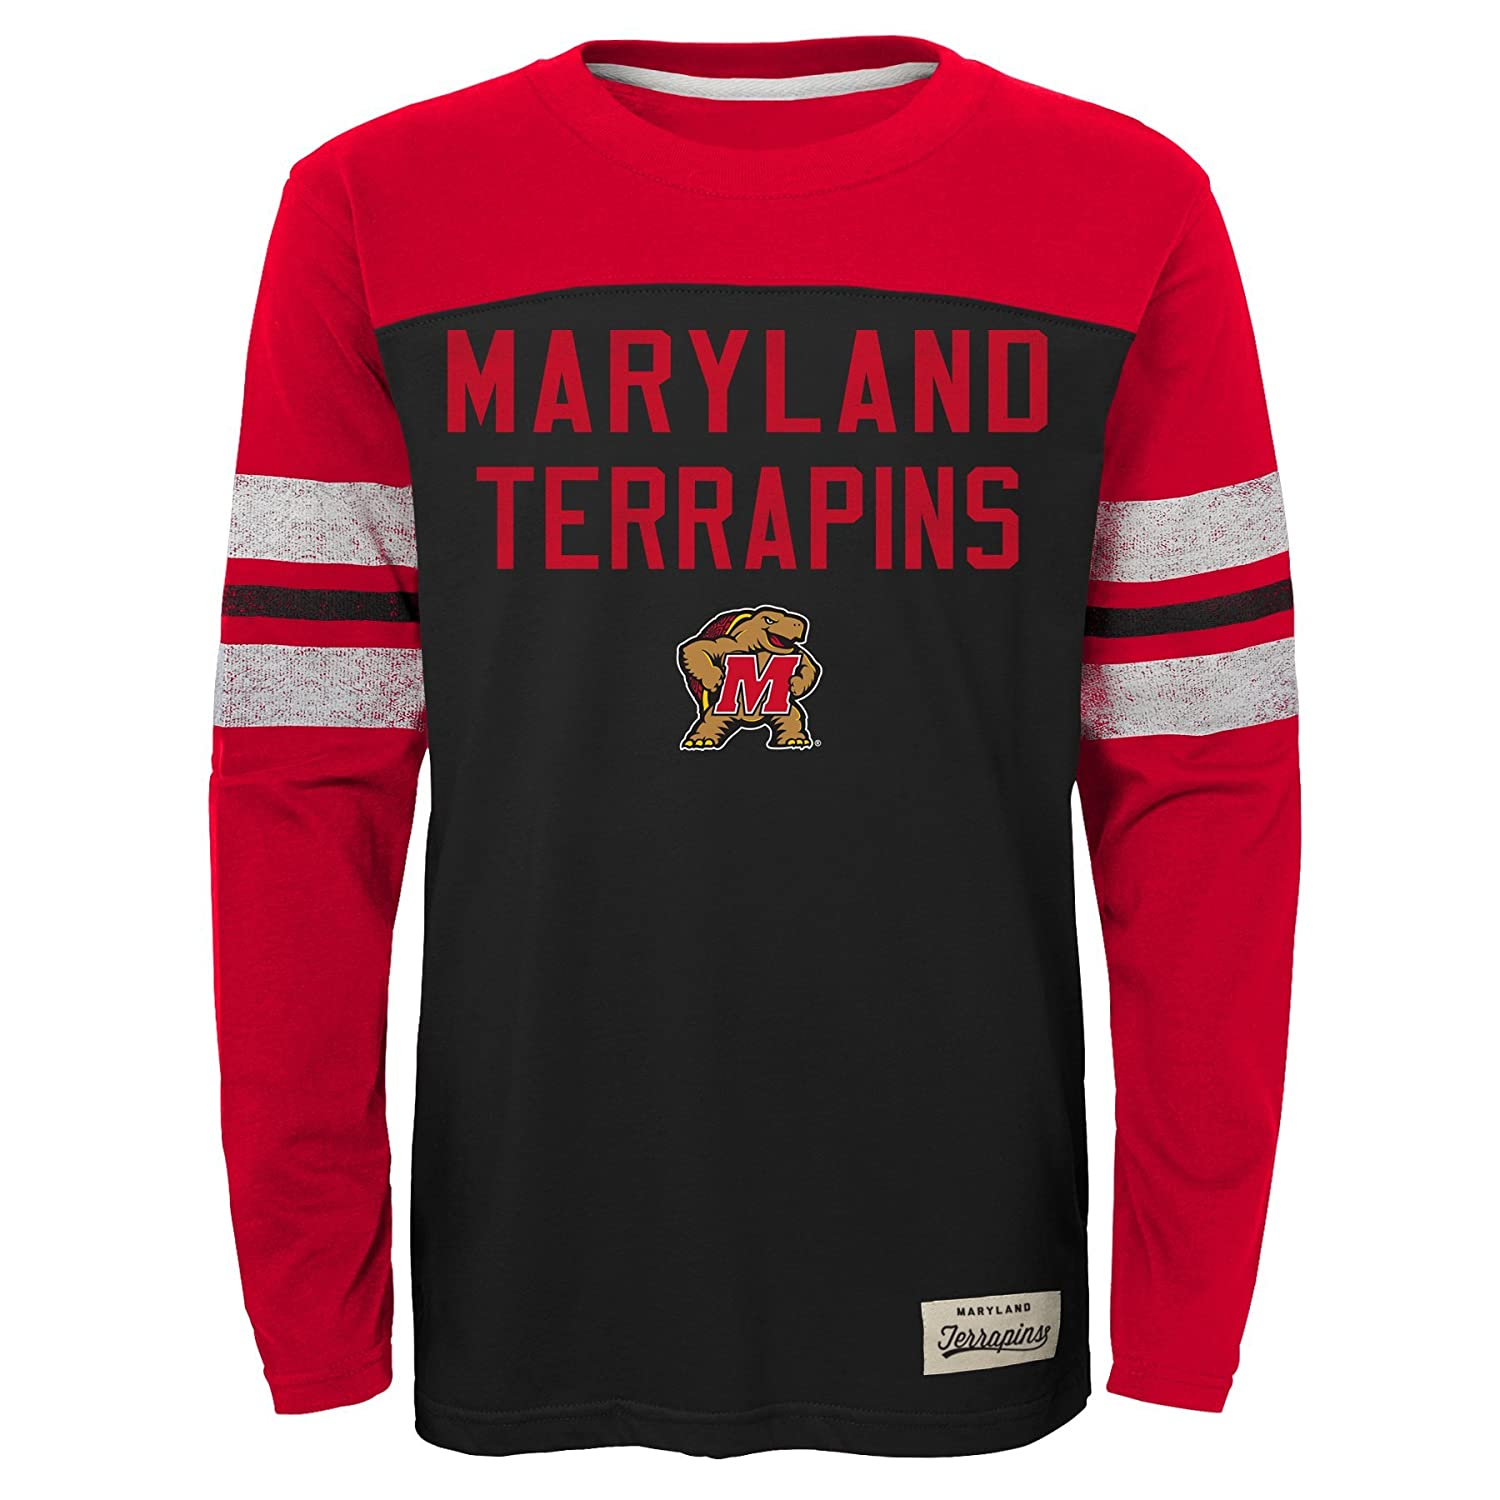 NCAA by Outerstuff NCAA Maryland Terrapins Kids /& Youth Boys Legacy Tee Long Sleeve Crew Youth Medium 10-12 Black